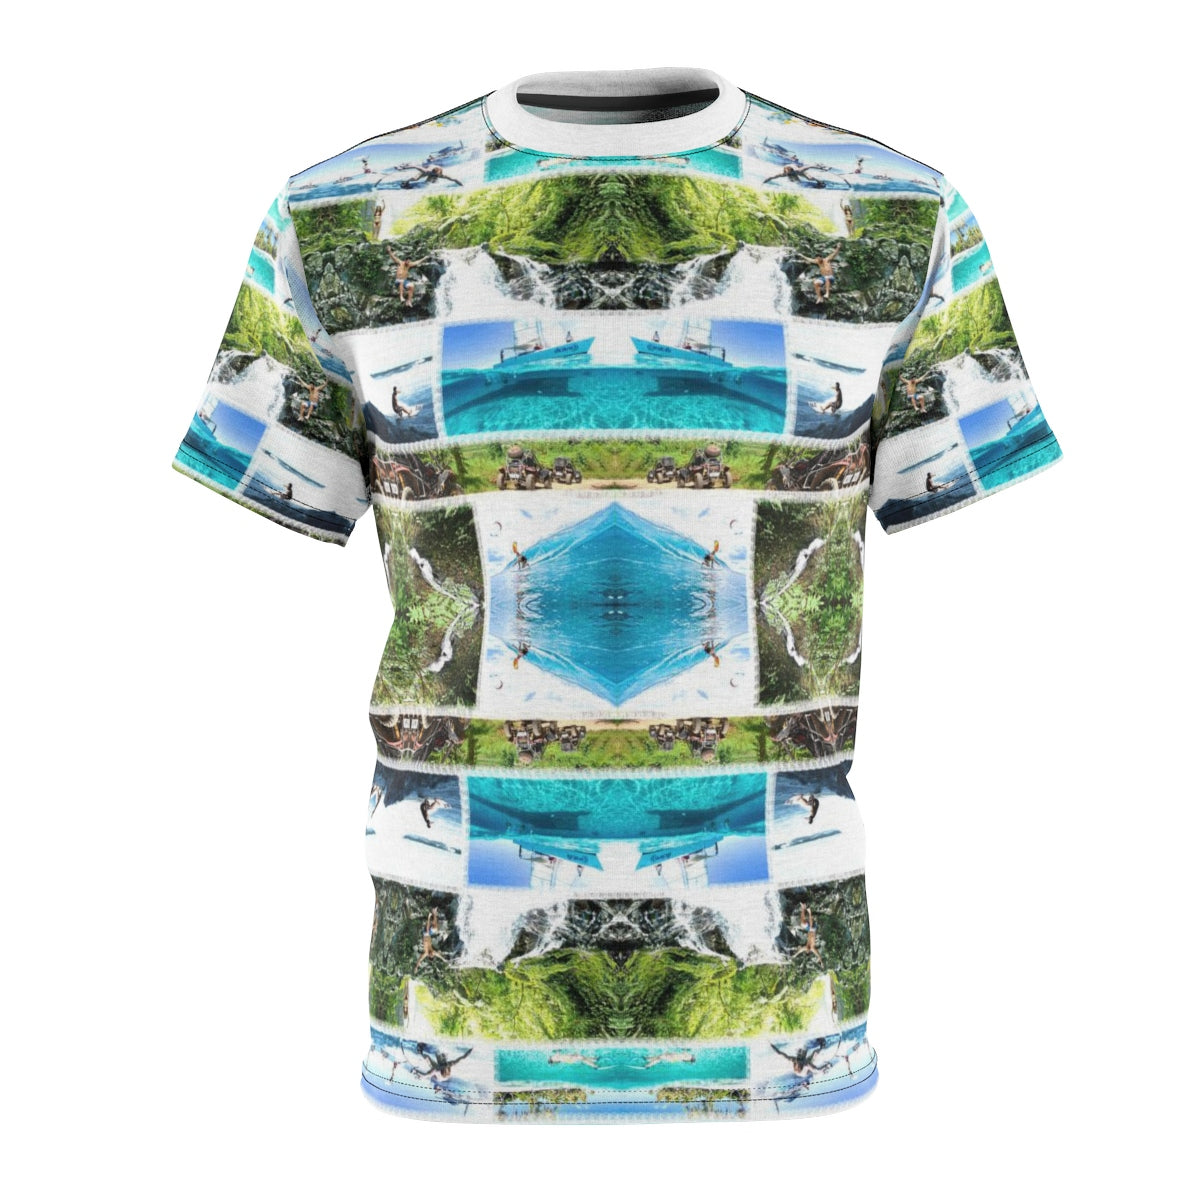 Fiji Islands #0019 (T-shirt)